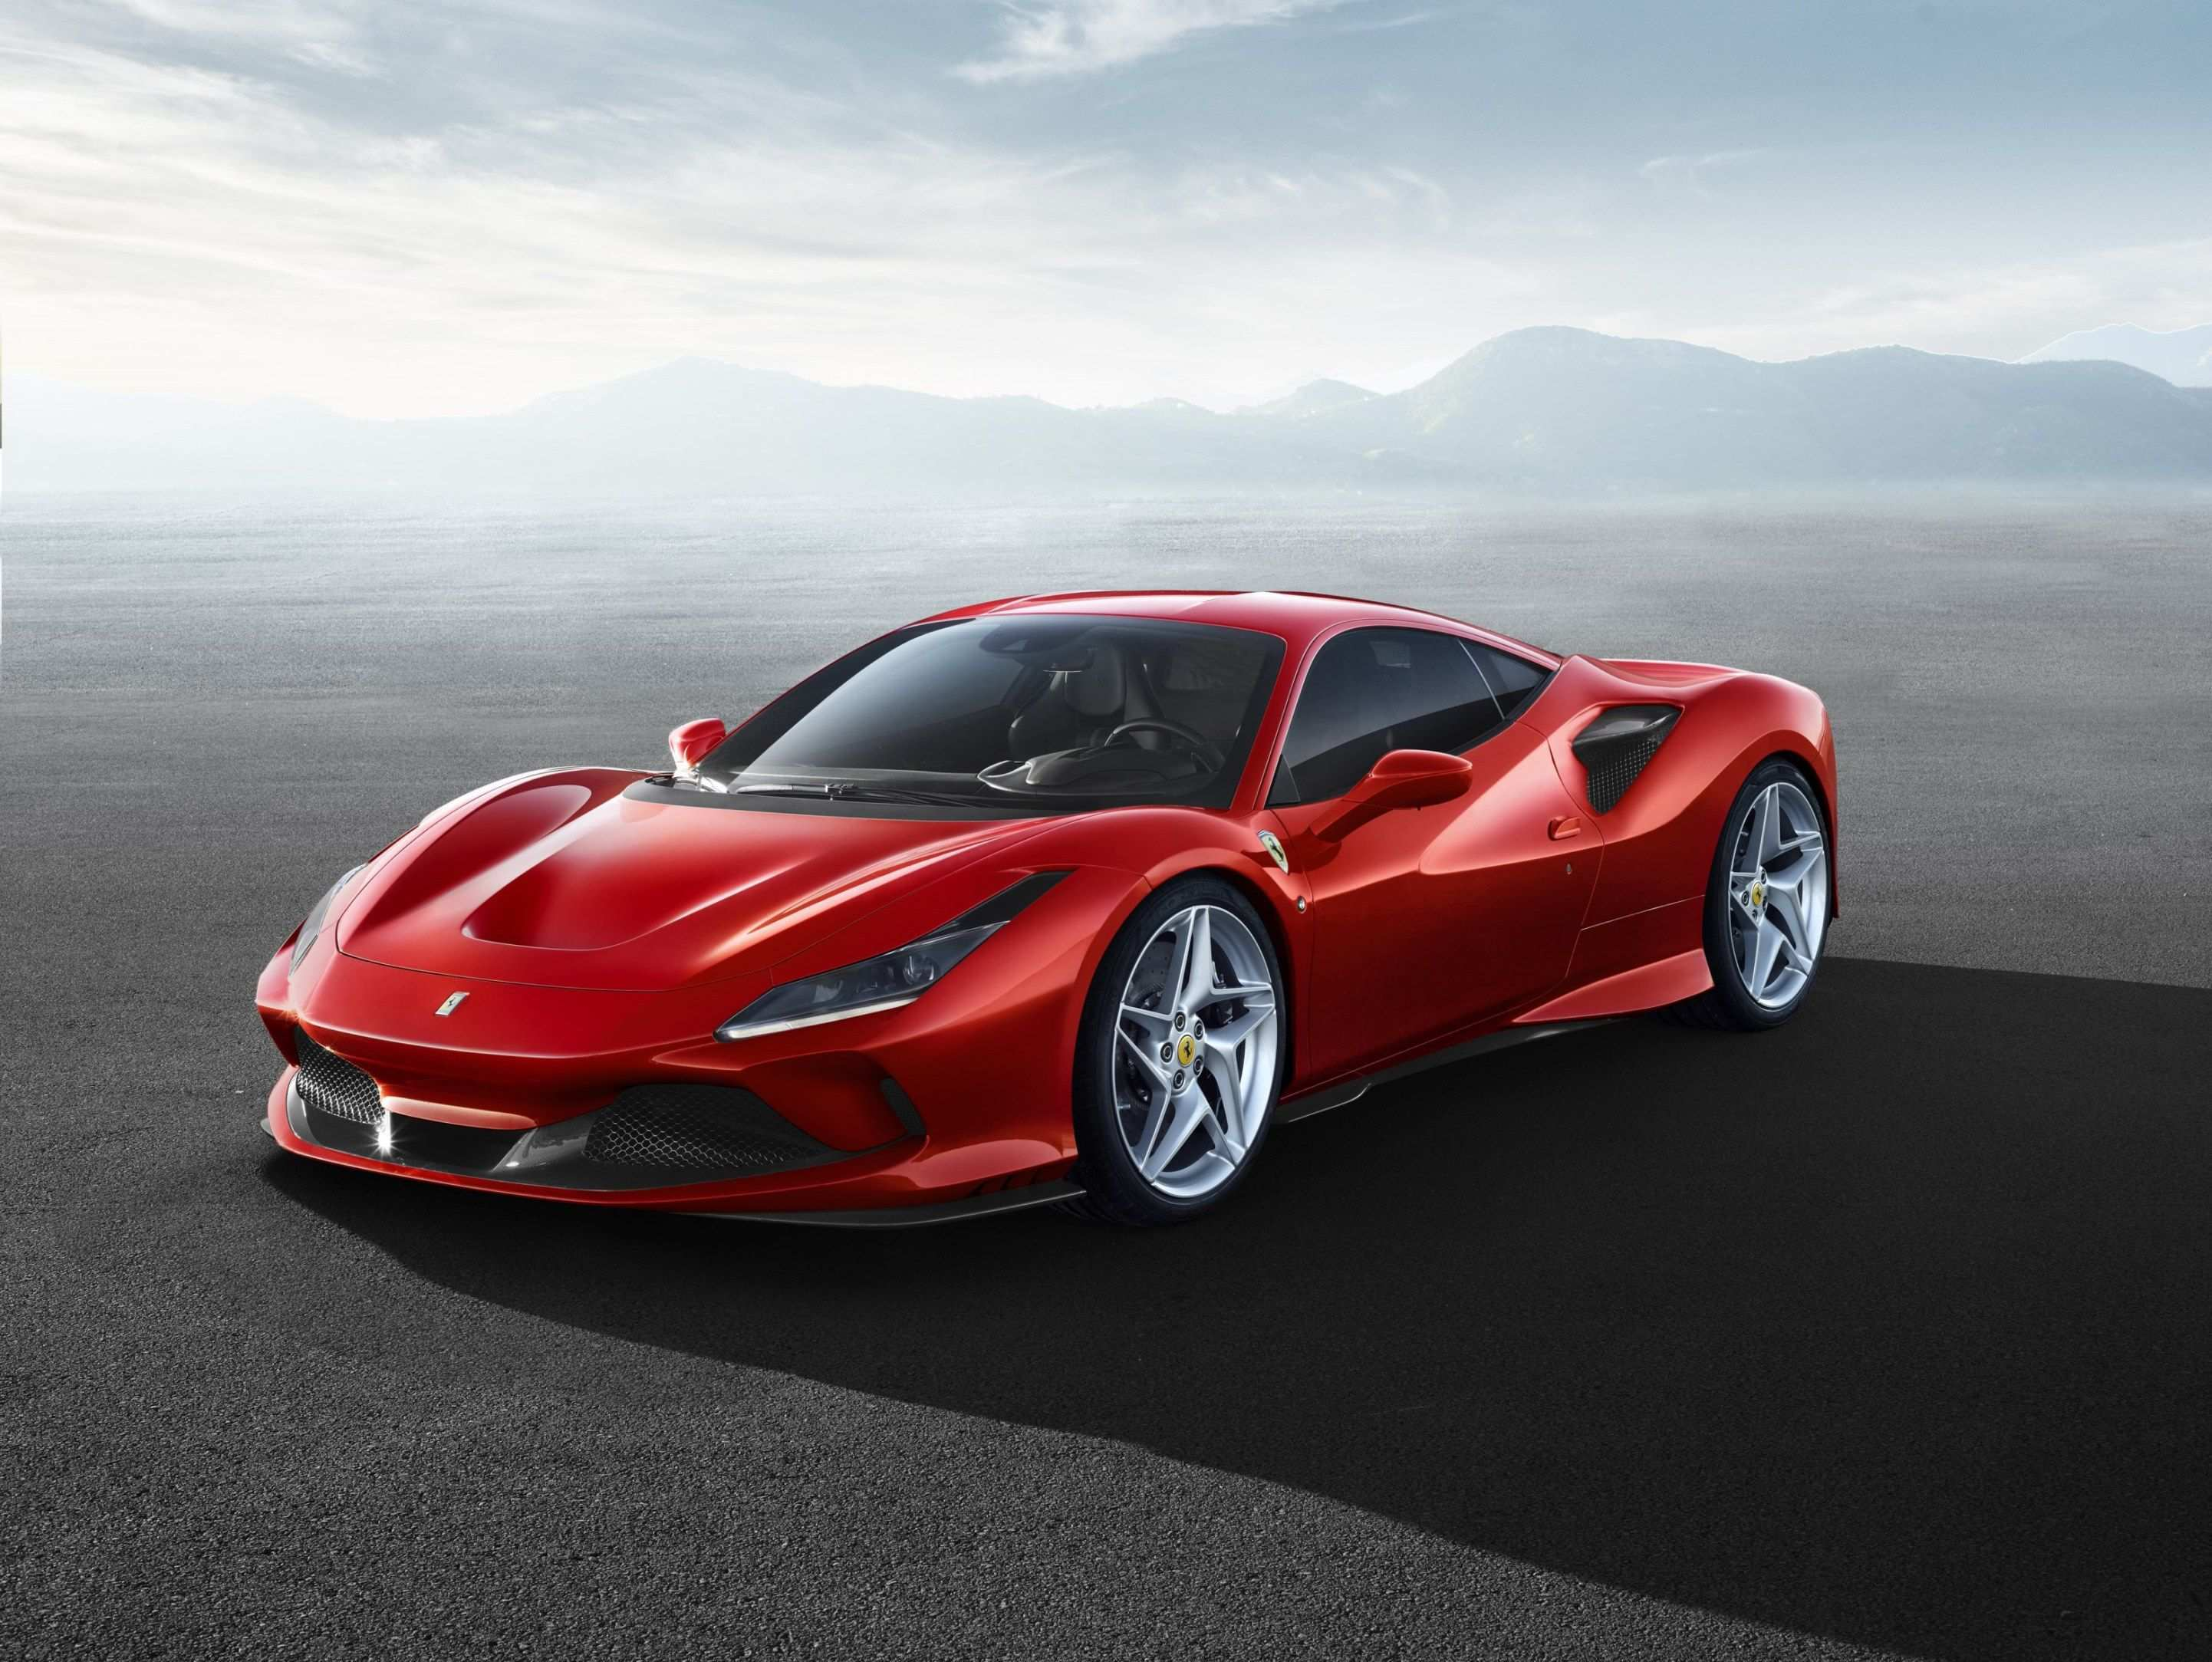 44 Best Ferrari 2020 Price Pictures